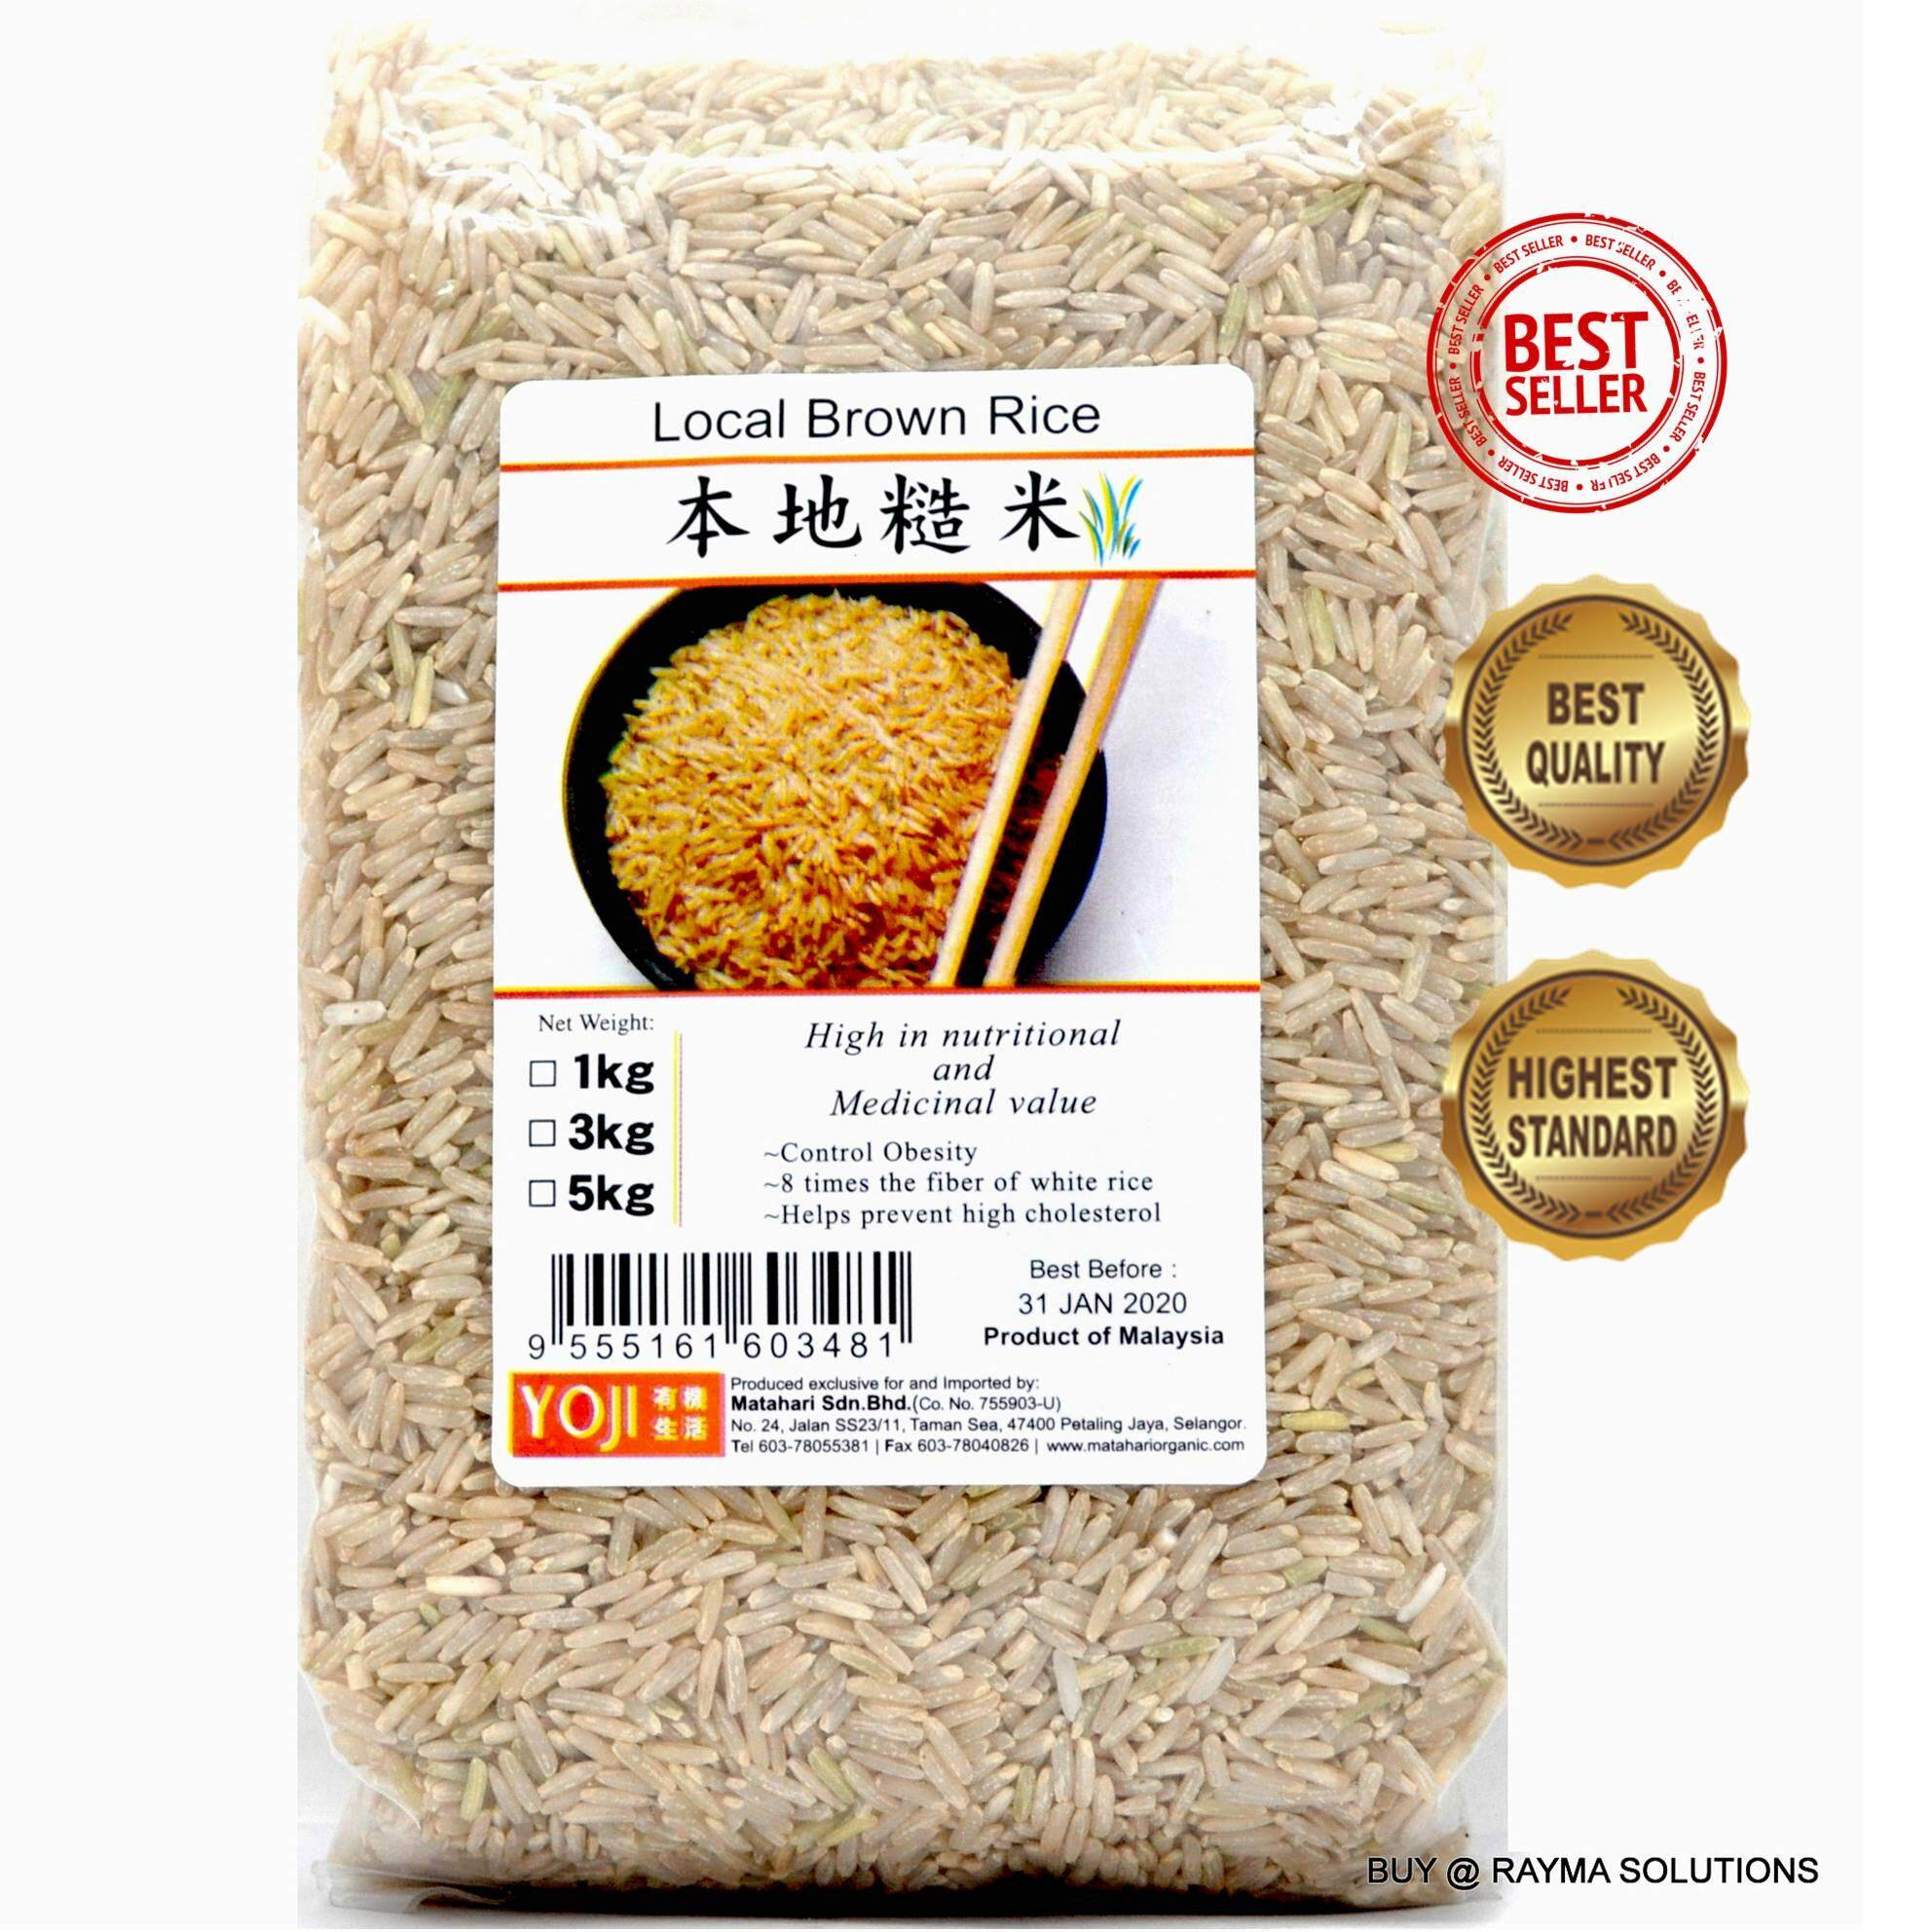 MH FOOD Local Brown RIce 1kg